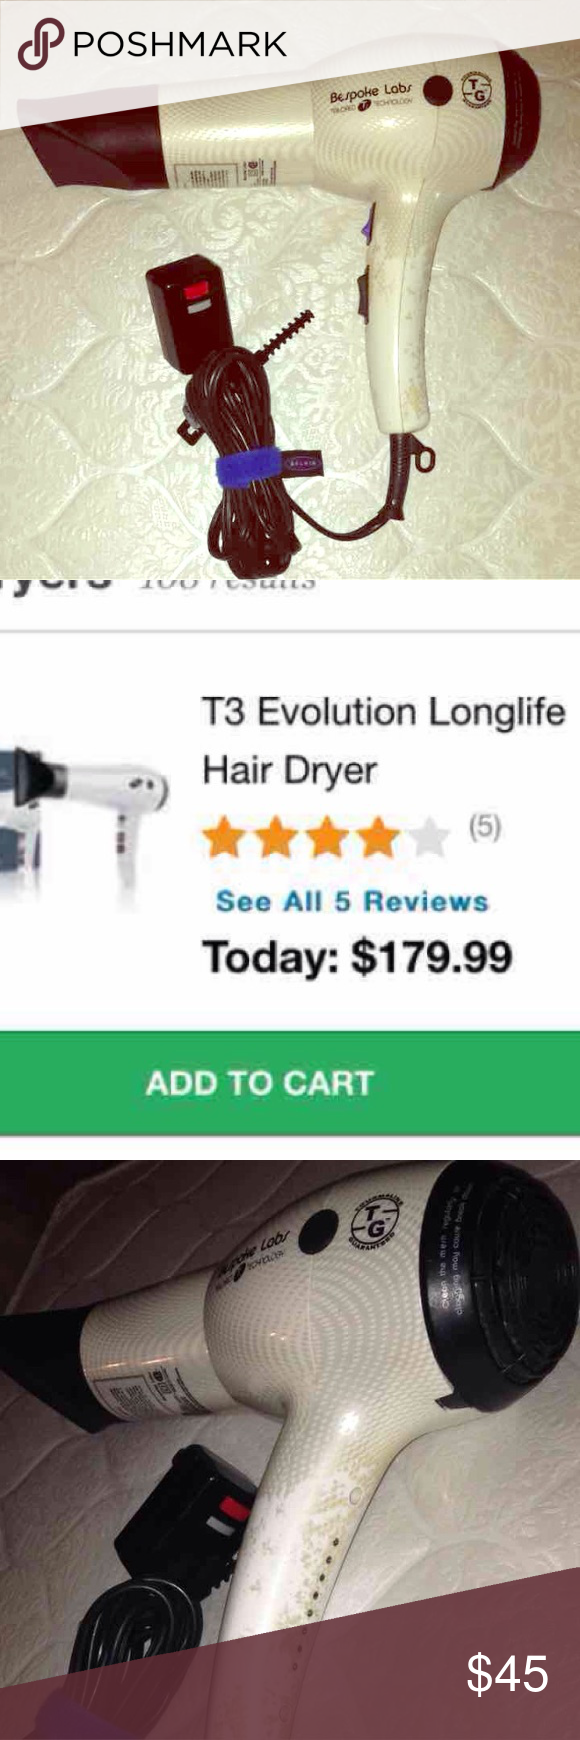 T3 Professional Hair Blow Dryer Used T3 Bespoke Labs Evolution Retail  $180-$200 Come with